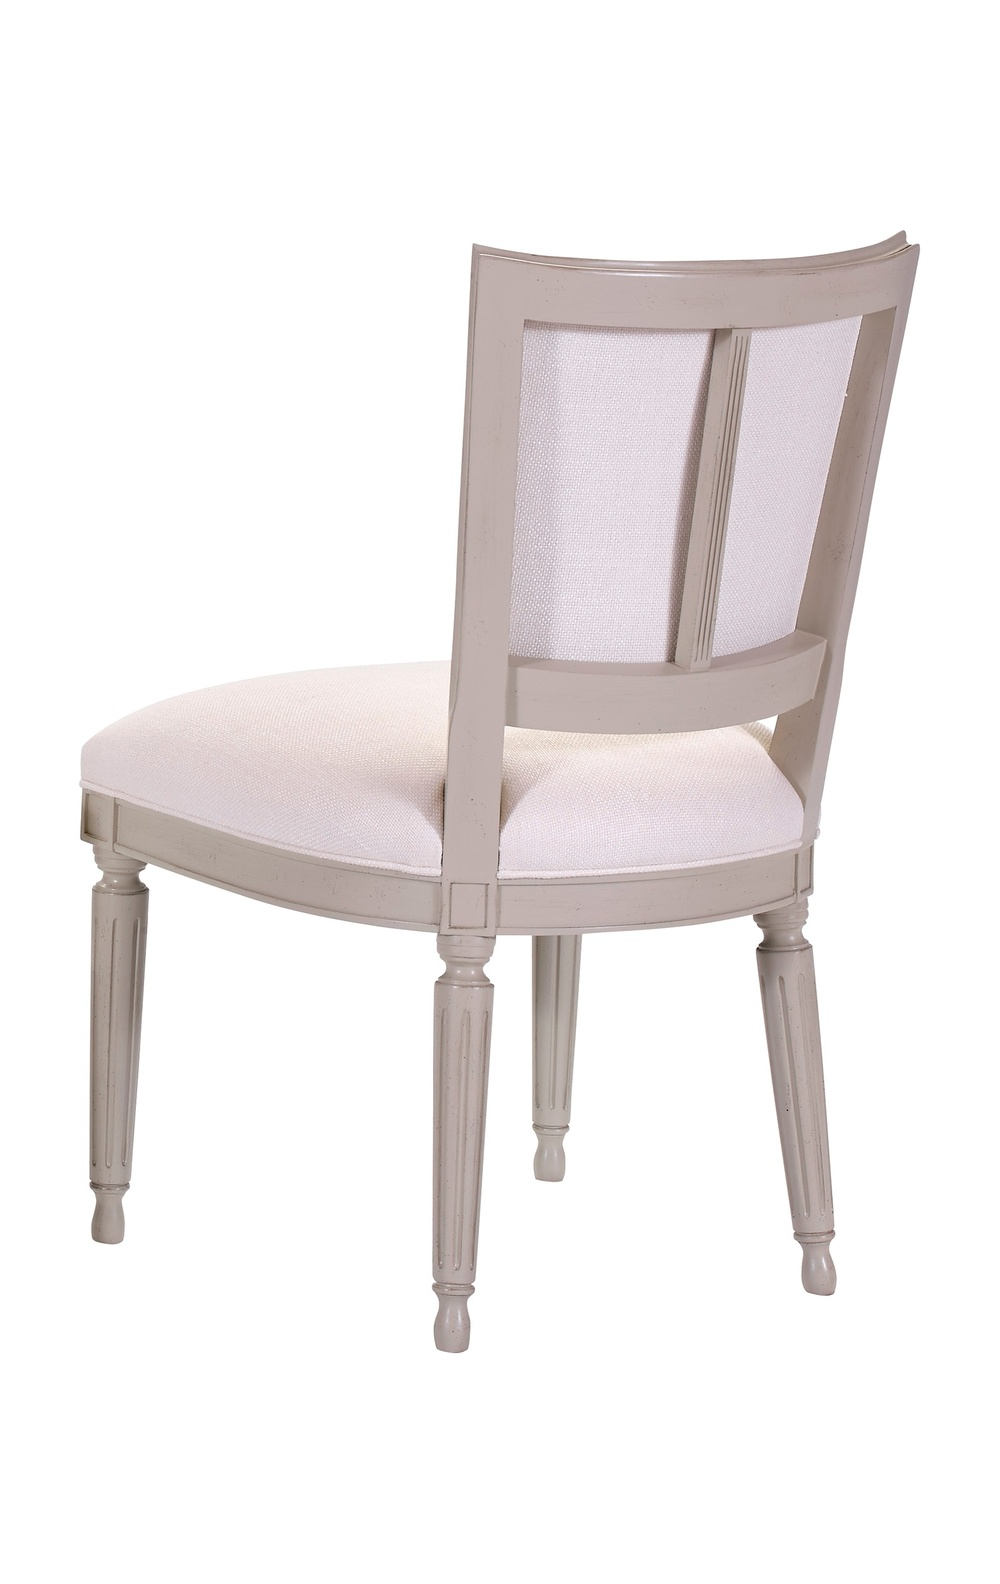 Hickory Chair - Velours Side Chair